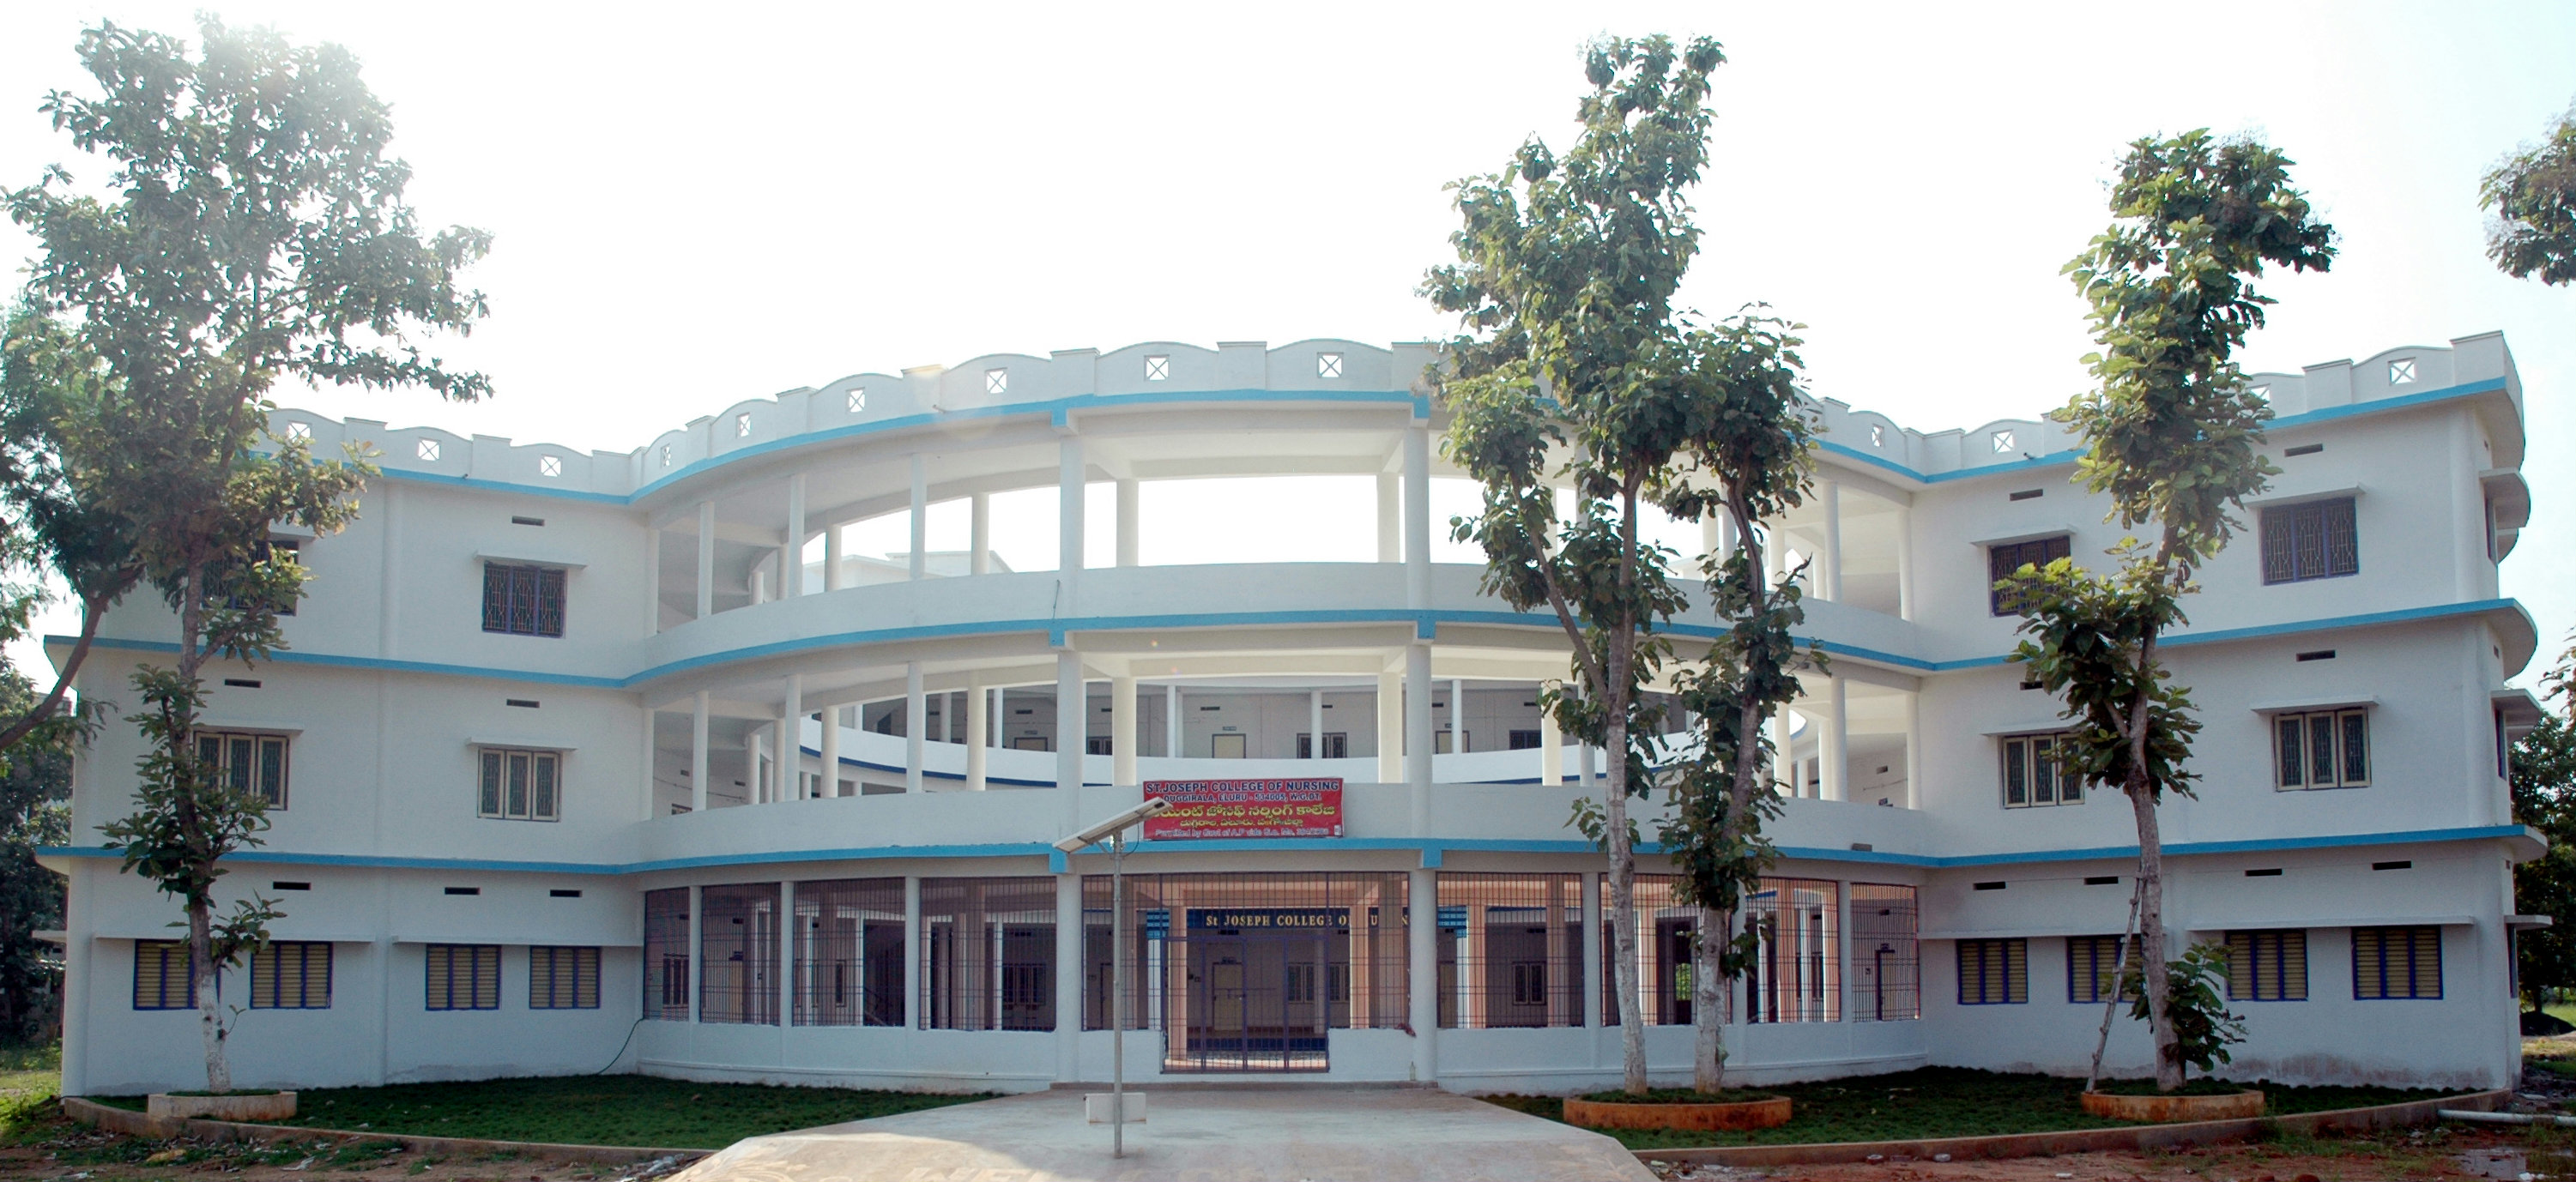 St Joseph College of Nursing